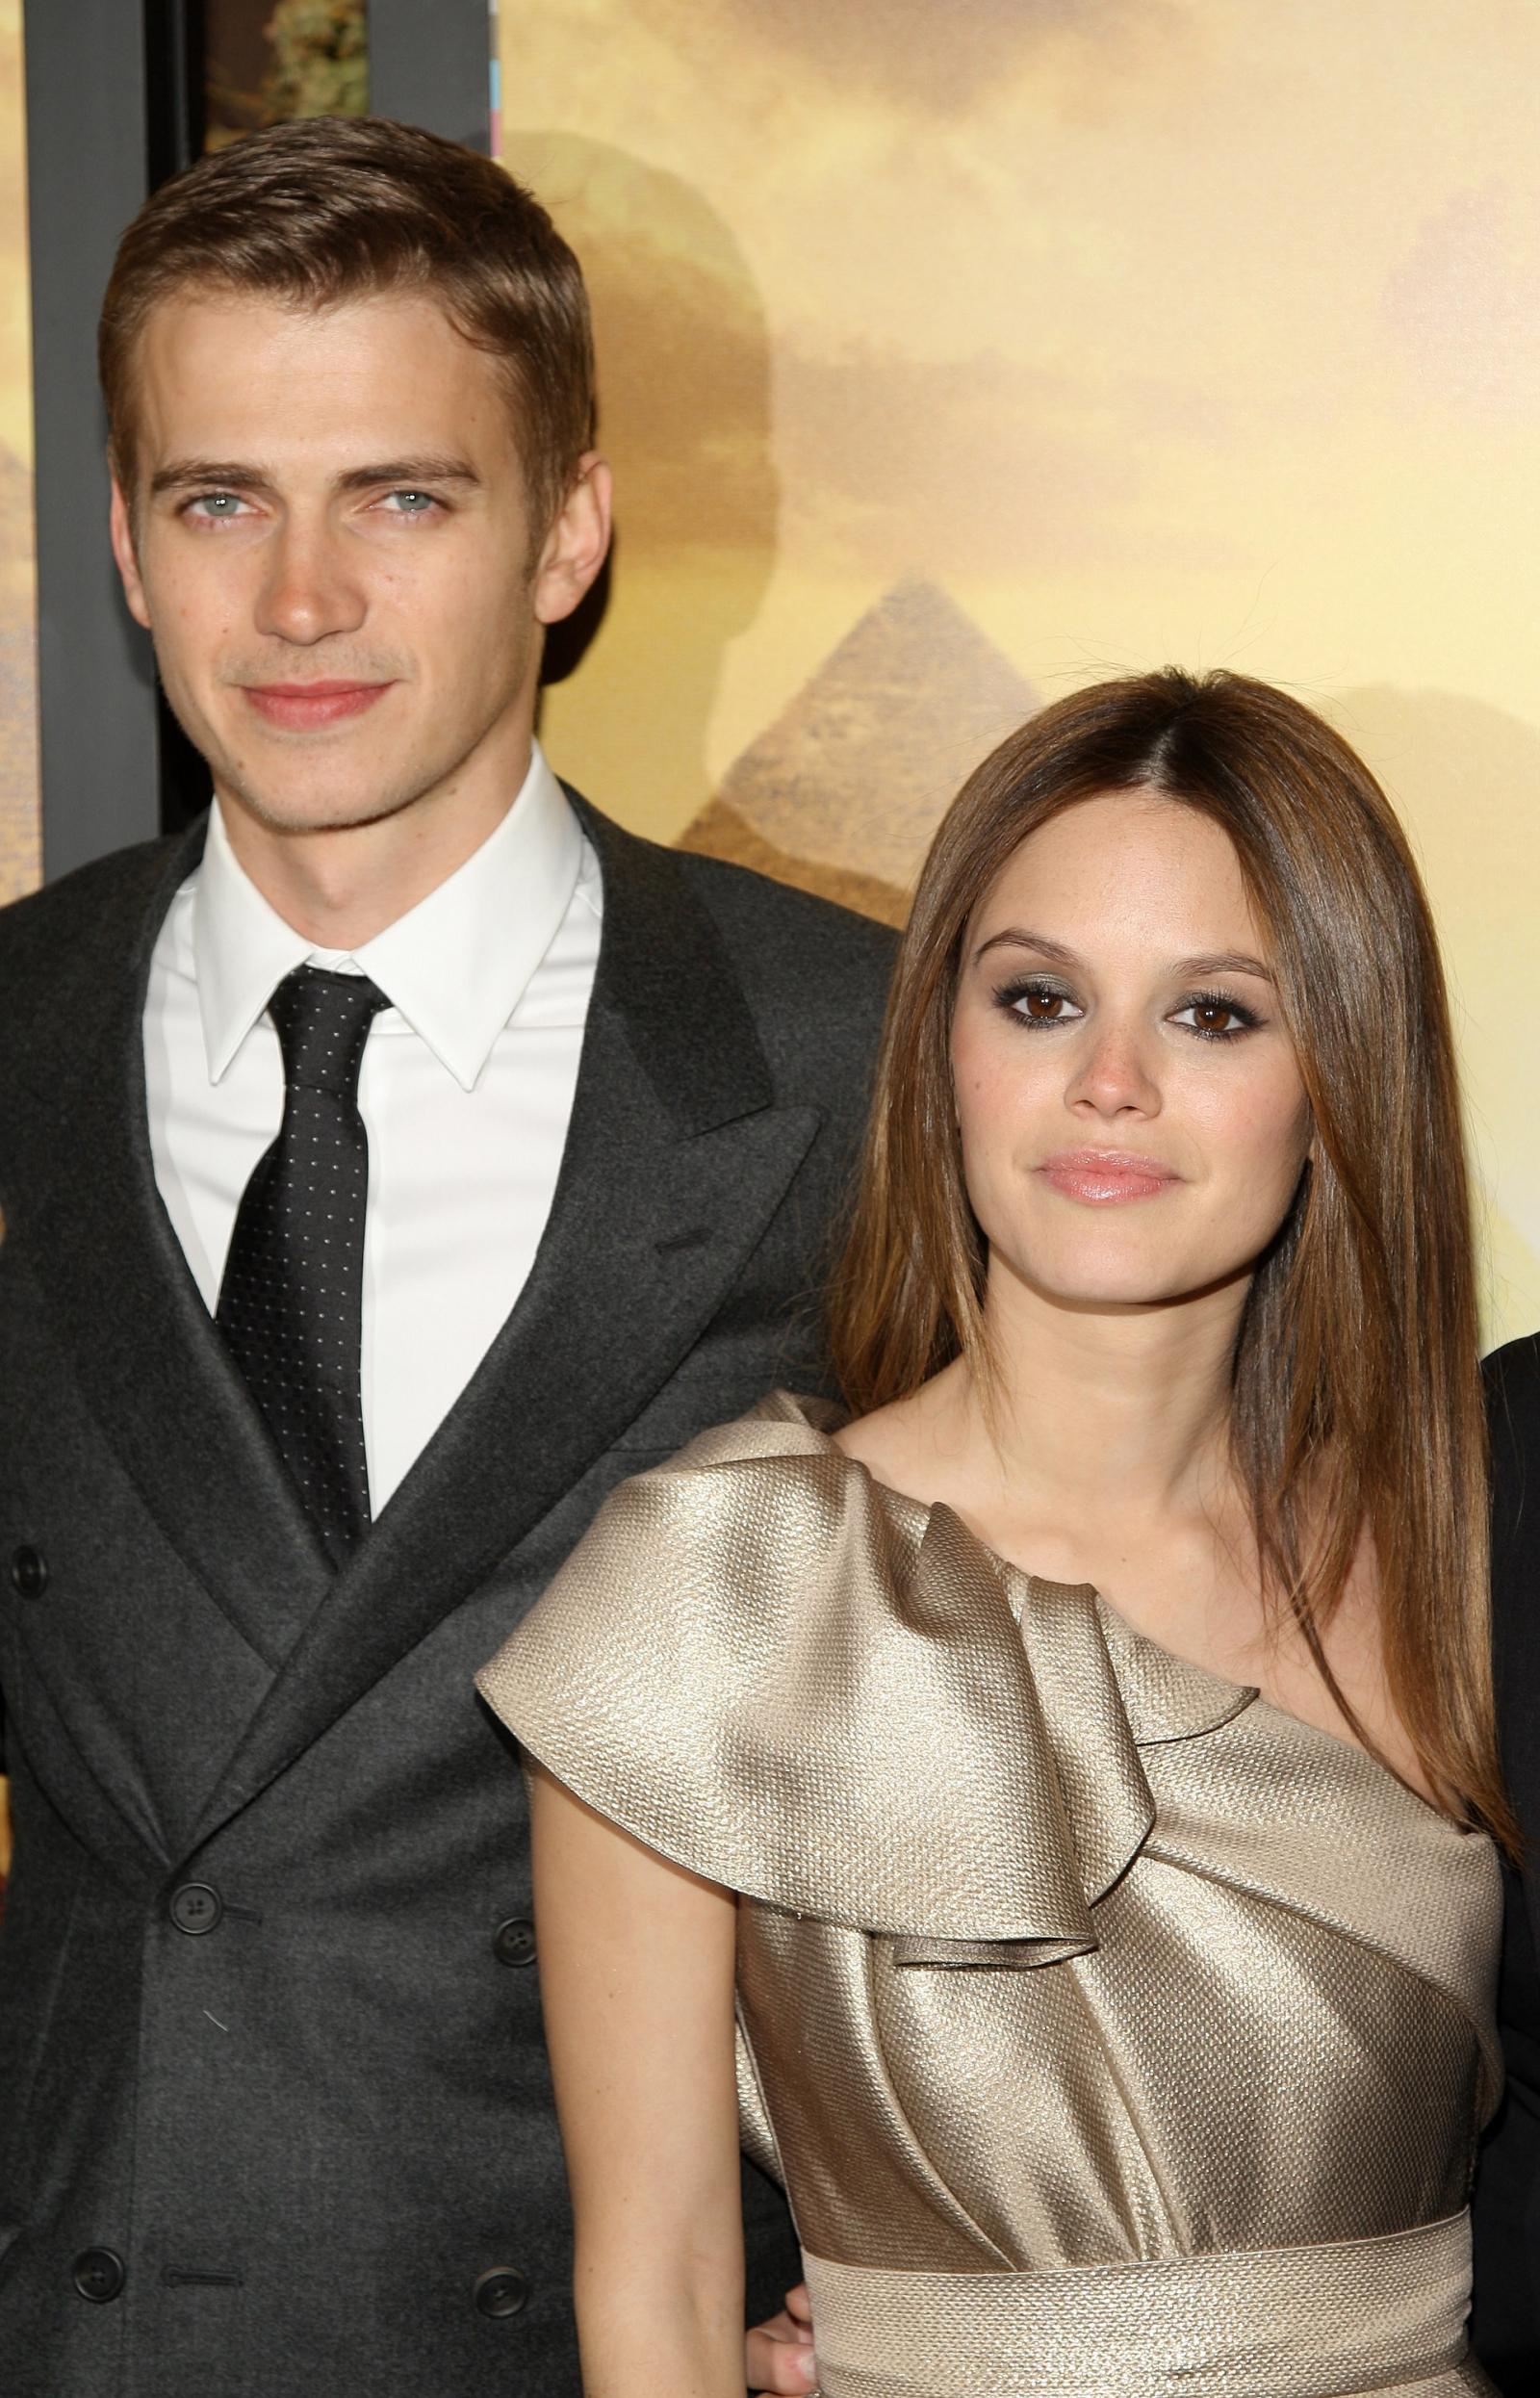 Hayden christensen dating rachel